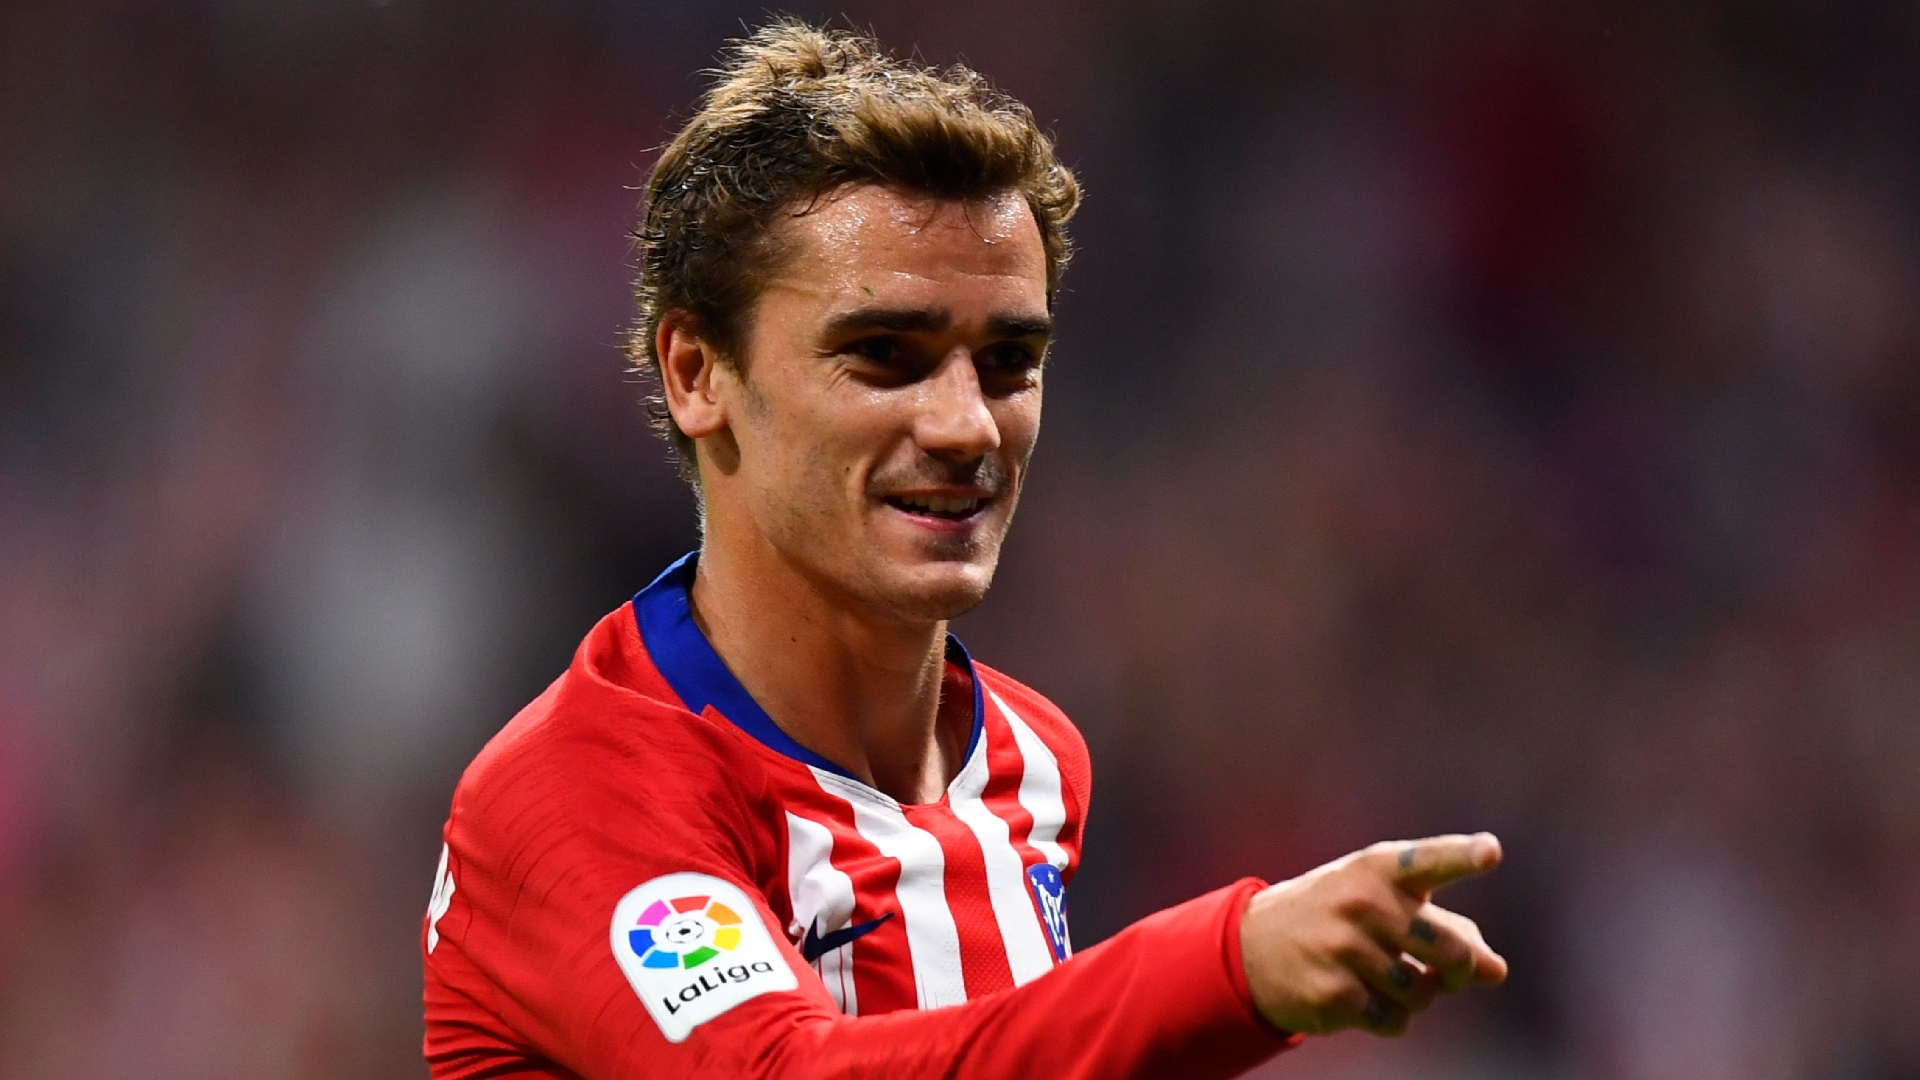 'We want Griezmann' - Beckham hopes France star joins new MLS club